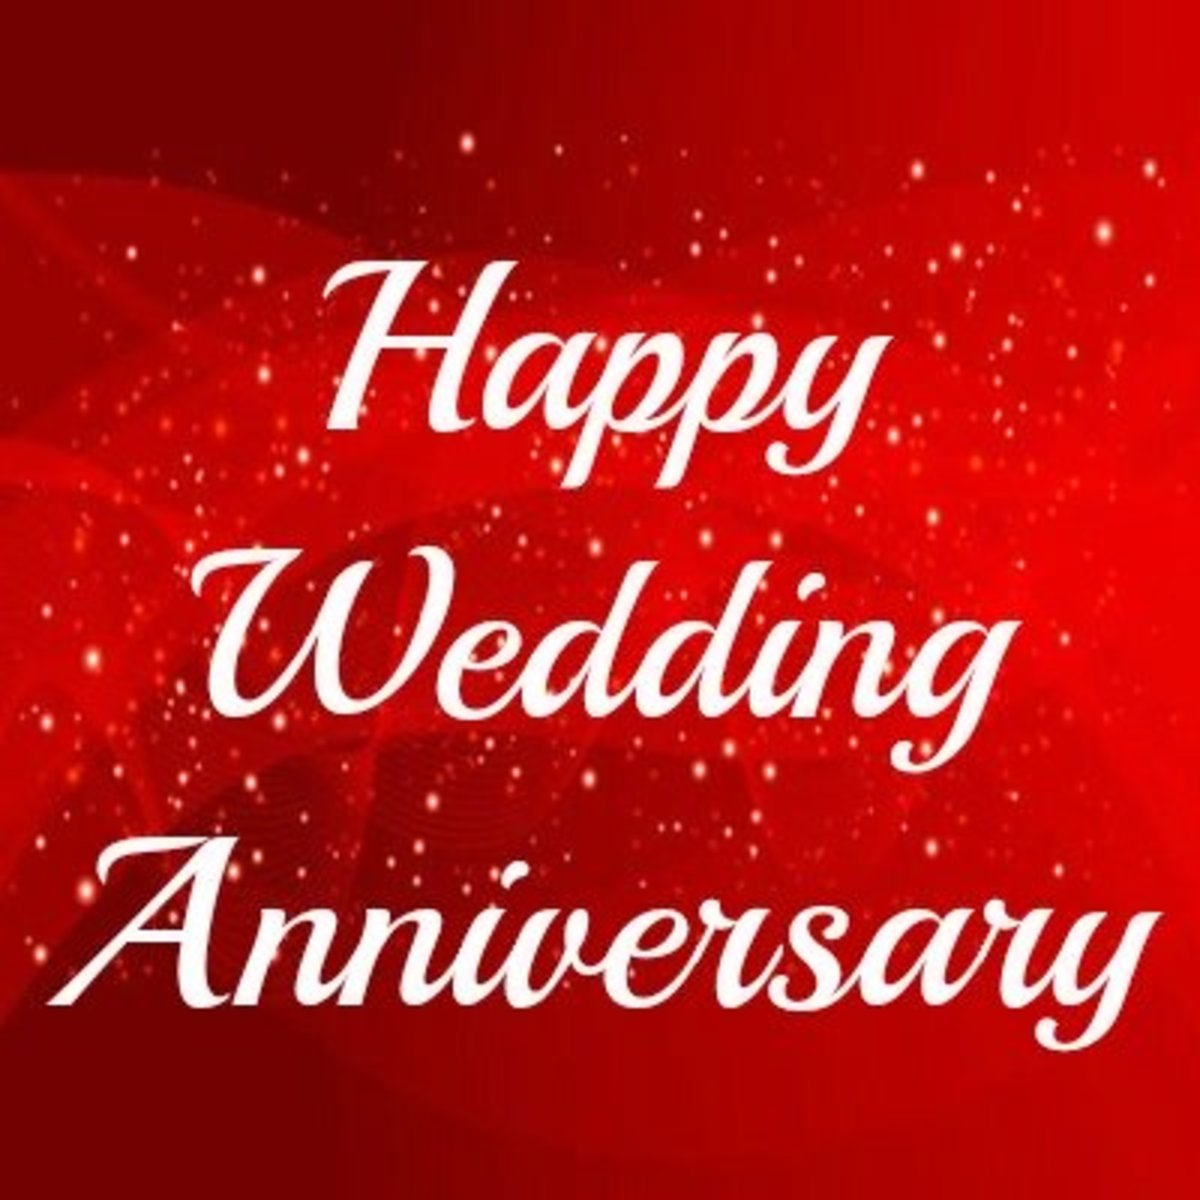 Happy anniversary messages and wishes holidappy need help figuring out how to send anniversary wishes to someone with over 50 happy anniversary messages greetings and cards this is a good place to m4hsunfo